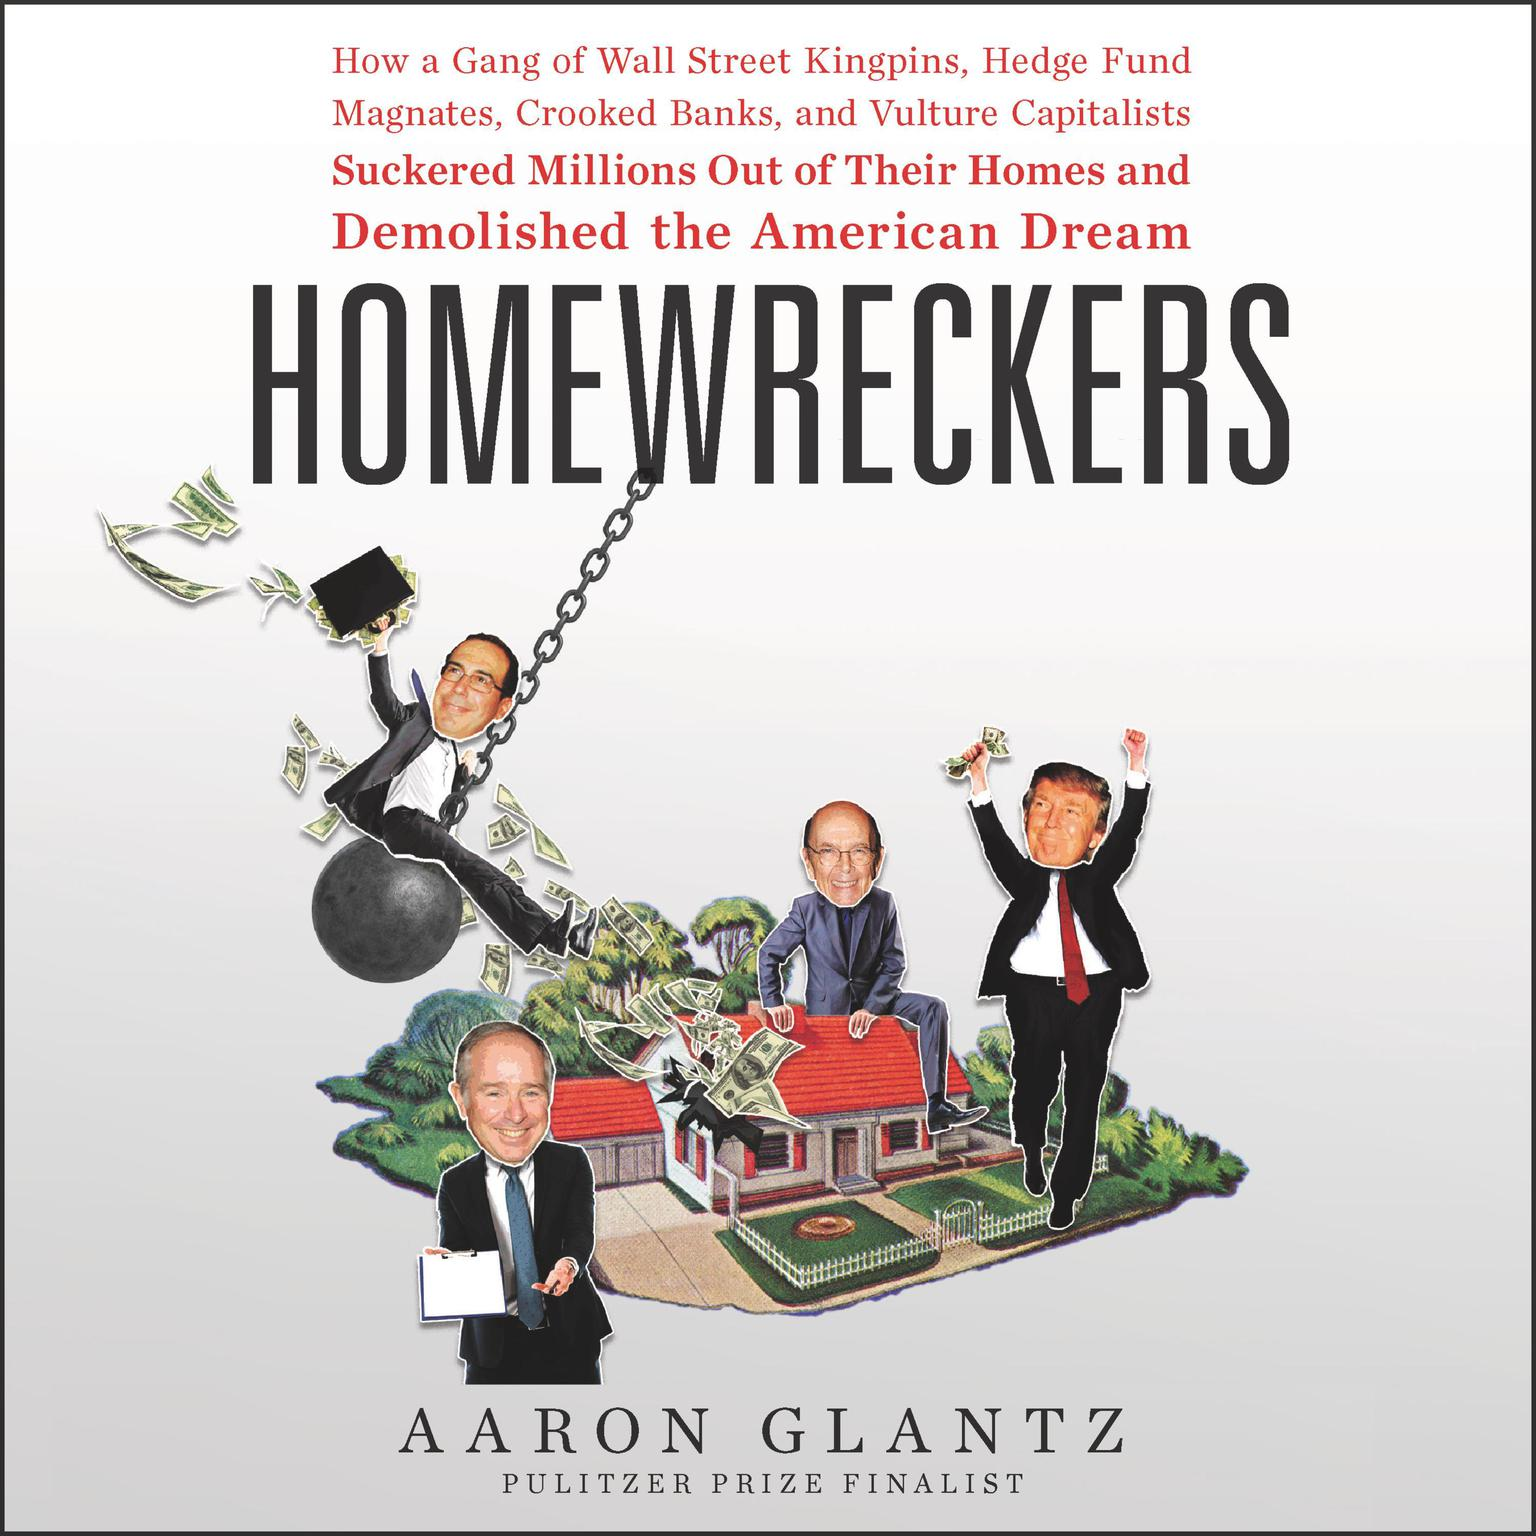 Printable Homewreckers: How a Gang of Wall Street Kingpins, Hedge Fund Magnates, Crooked Banks, and Vulture Capitalists Suckered Millions Out of Their Homes and Demolished the American Dream Audiobook Cover Art